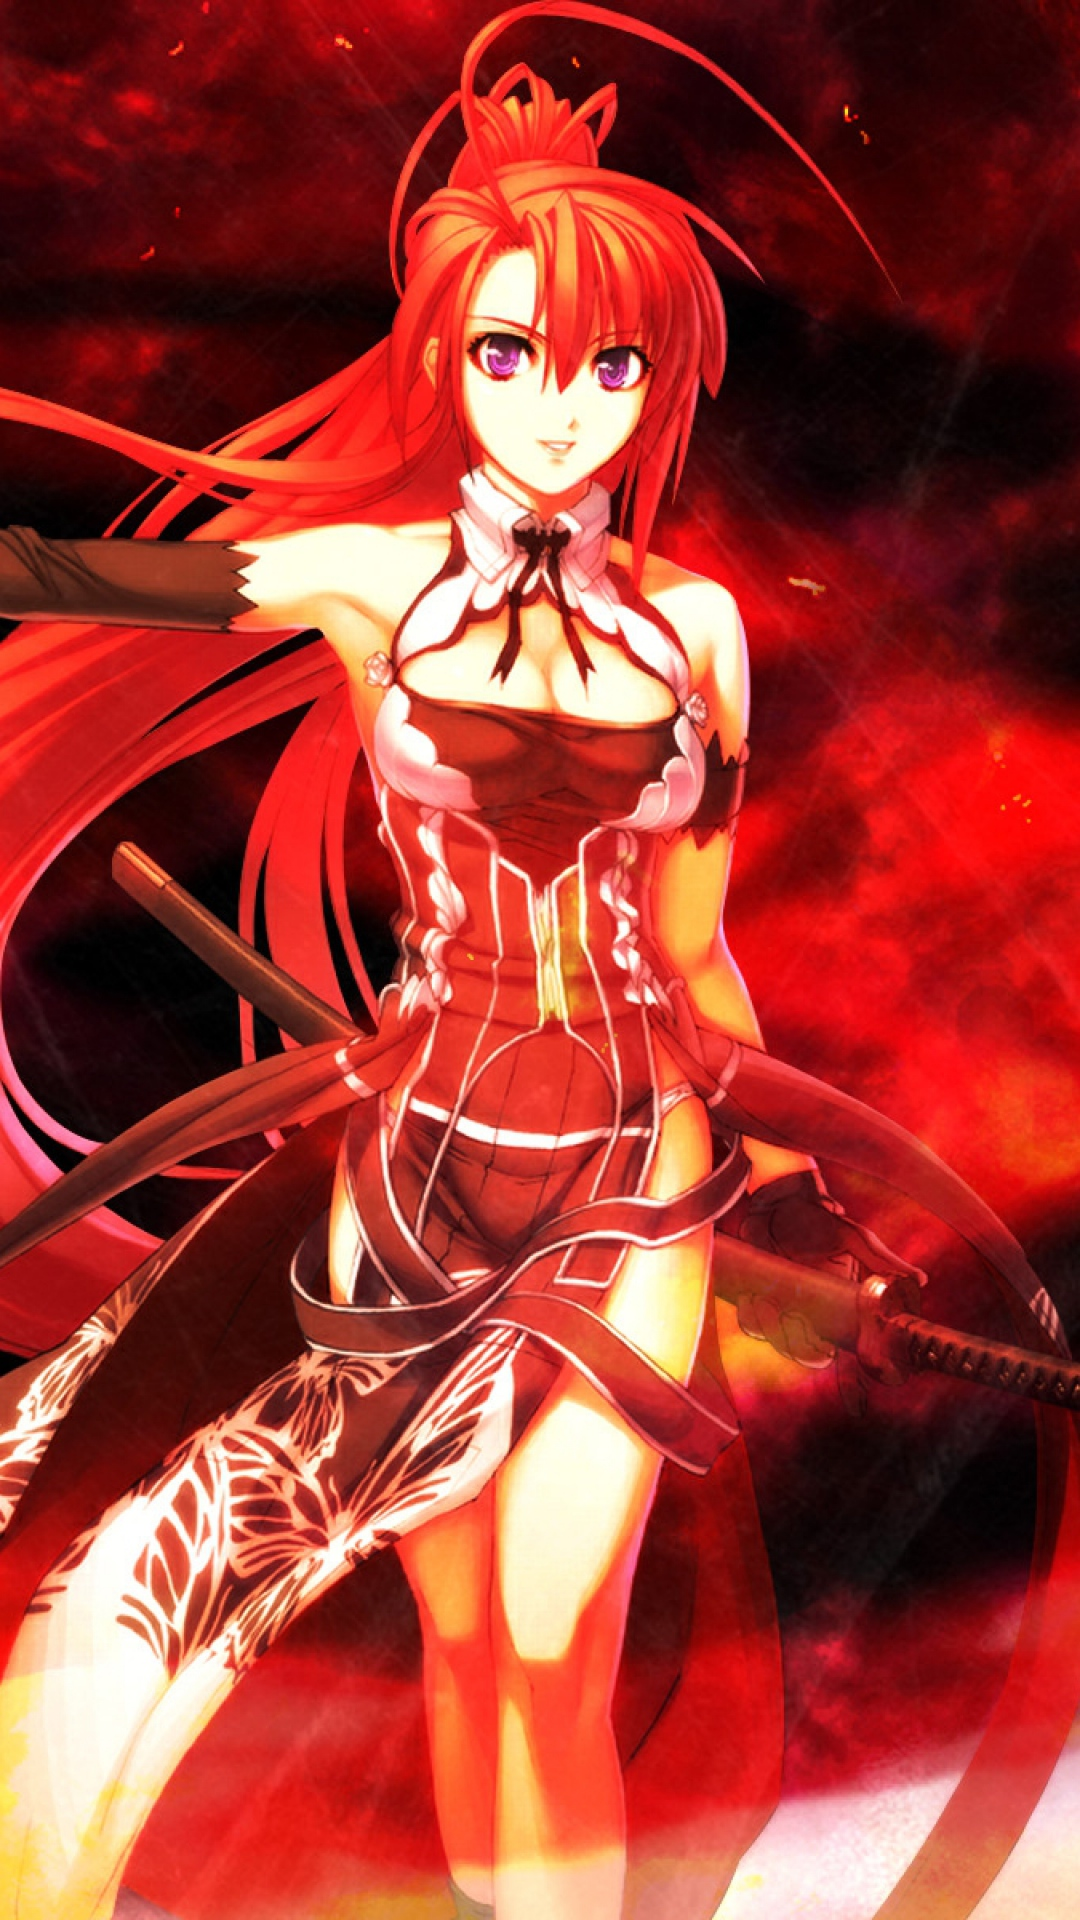 Download Wallpaper 1080x1920 anime girl red hair sword background 1080x1920